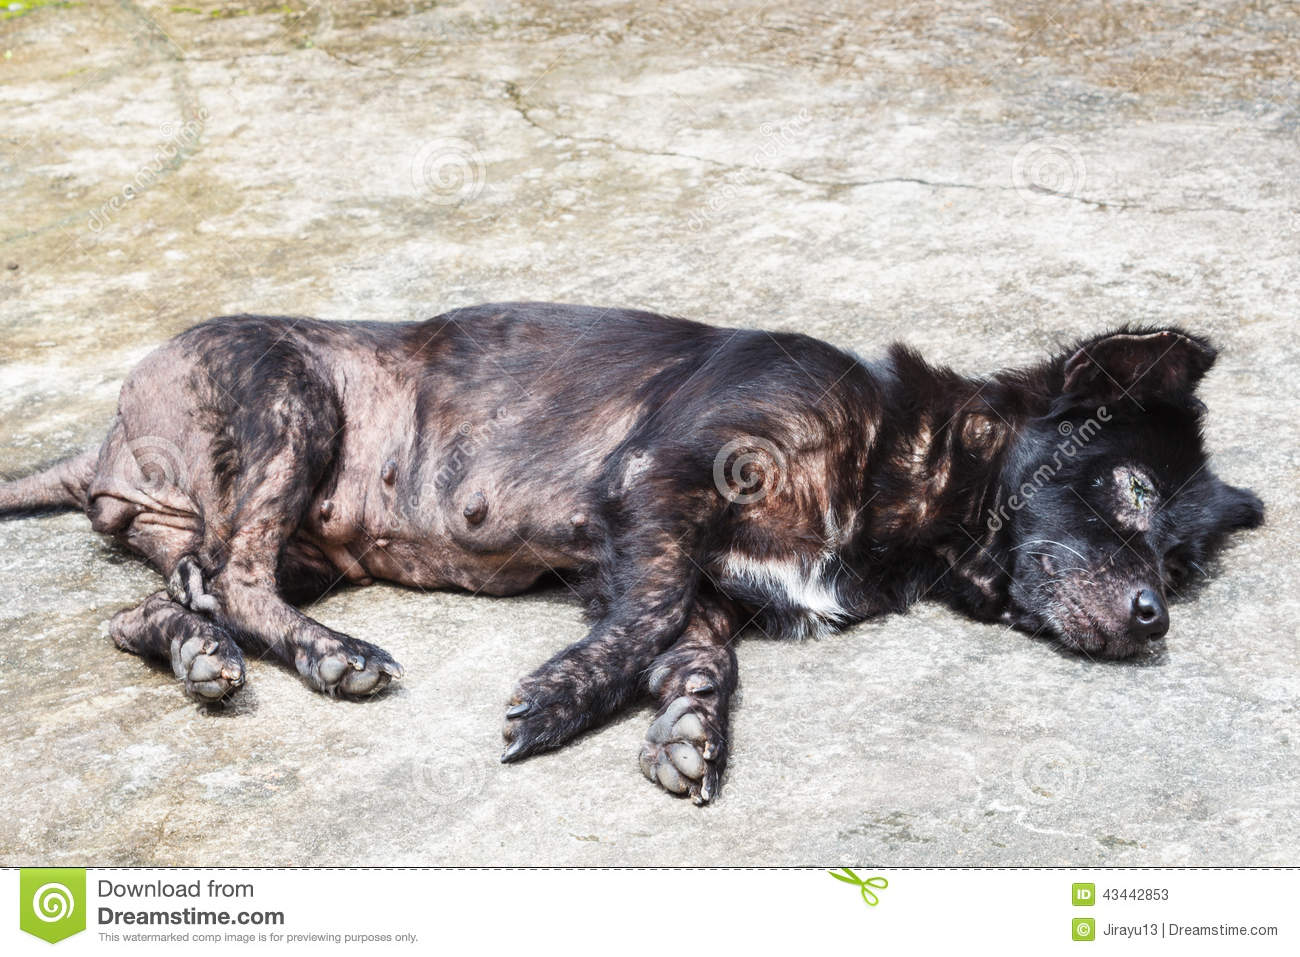 Skin Disease Pictures In Dogs